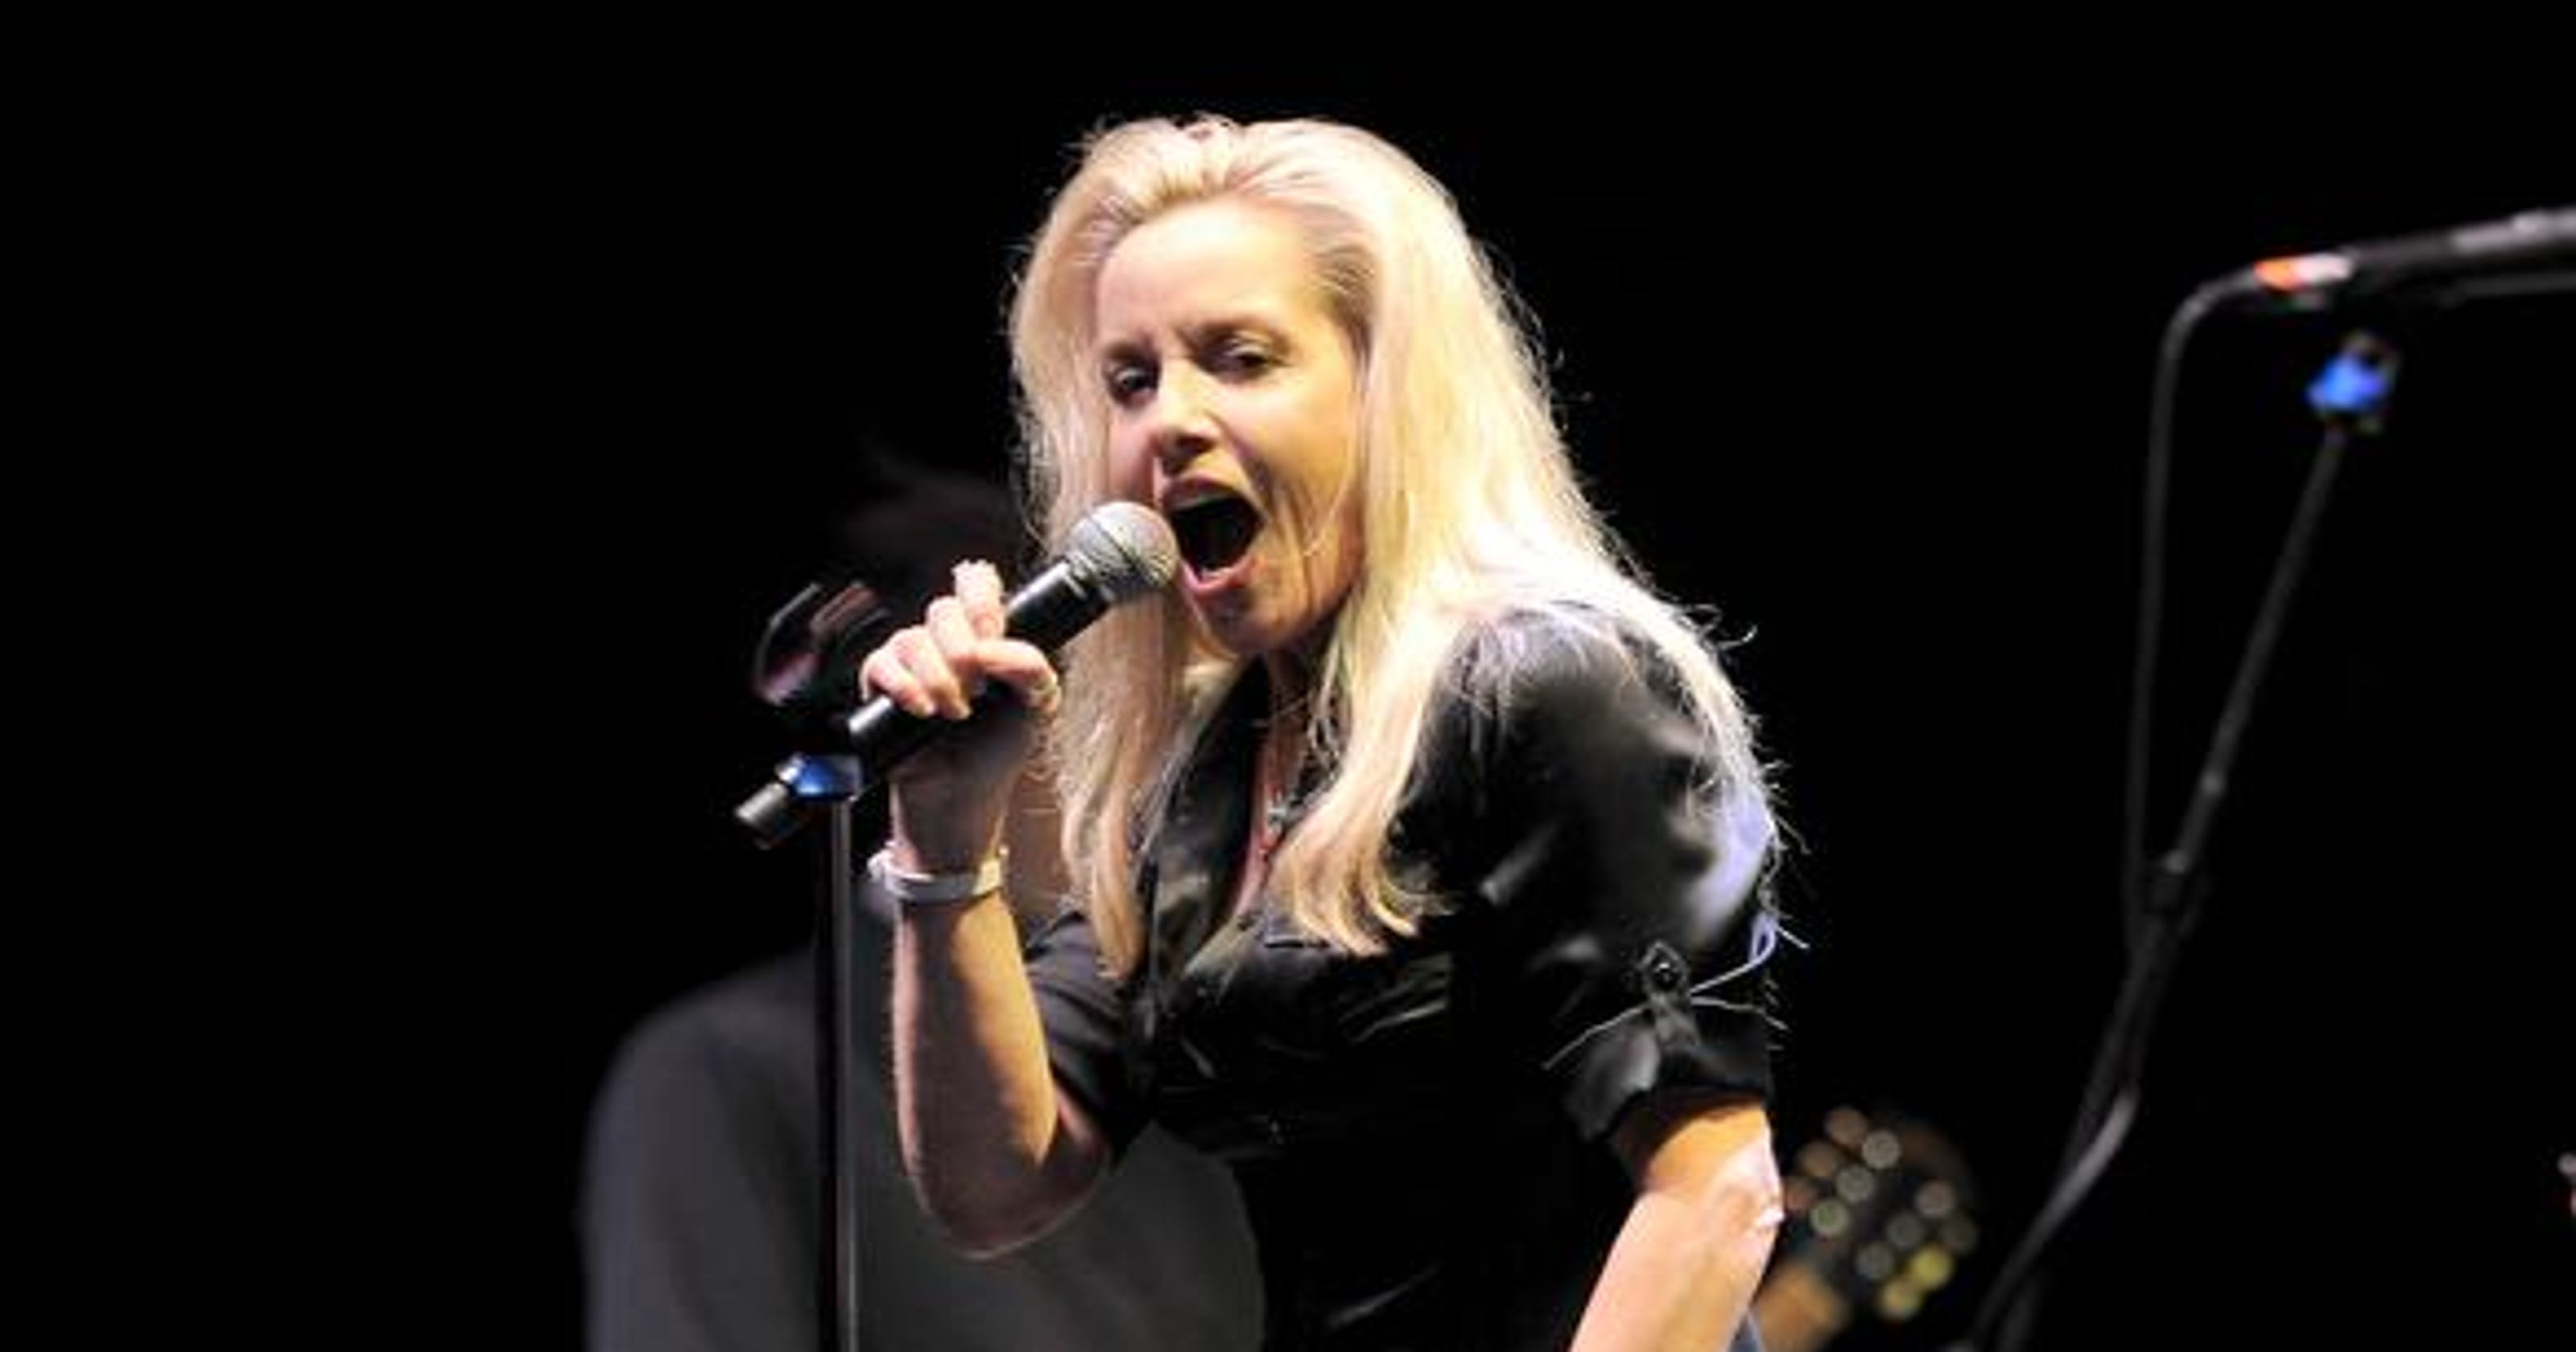 After Dark: Cherie Currie to perform Sunday